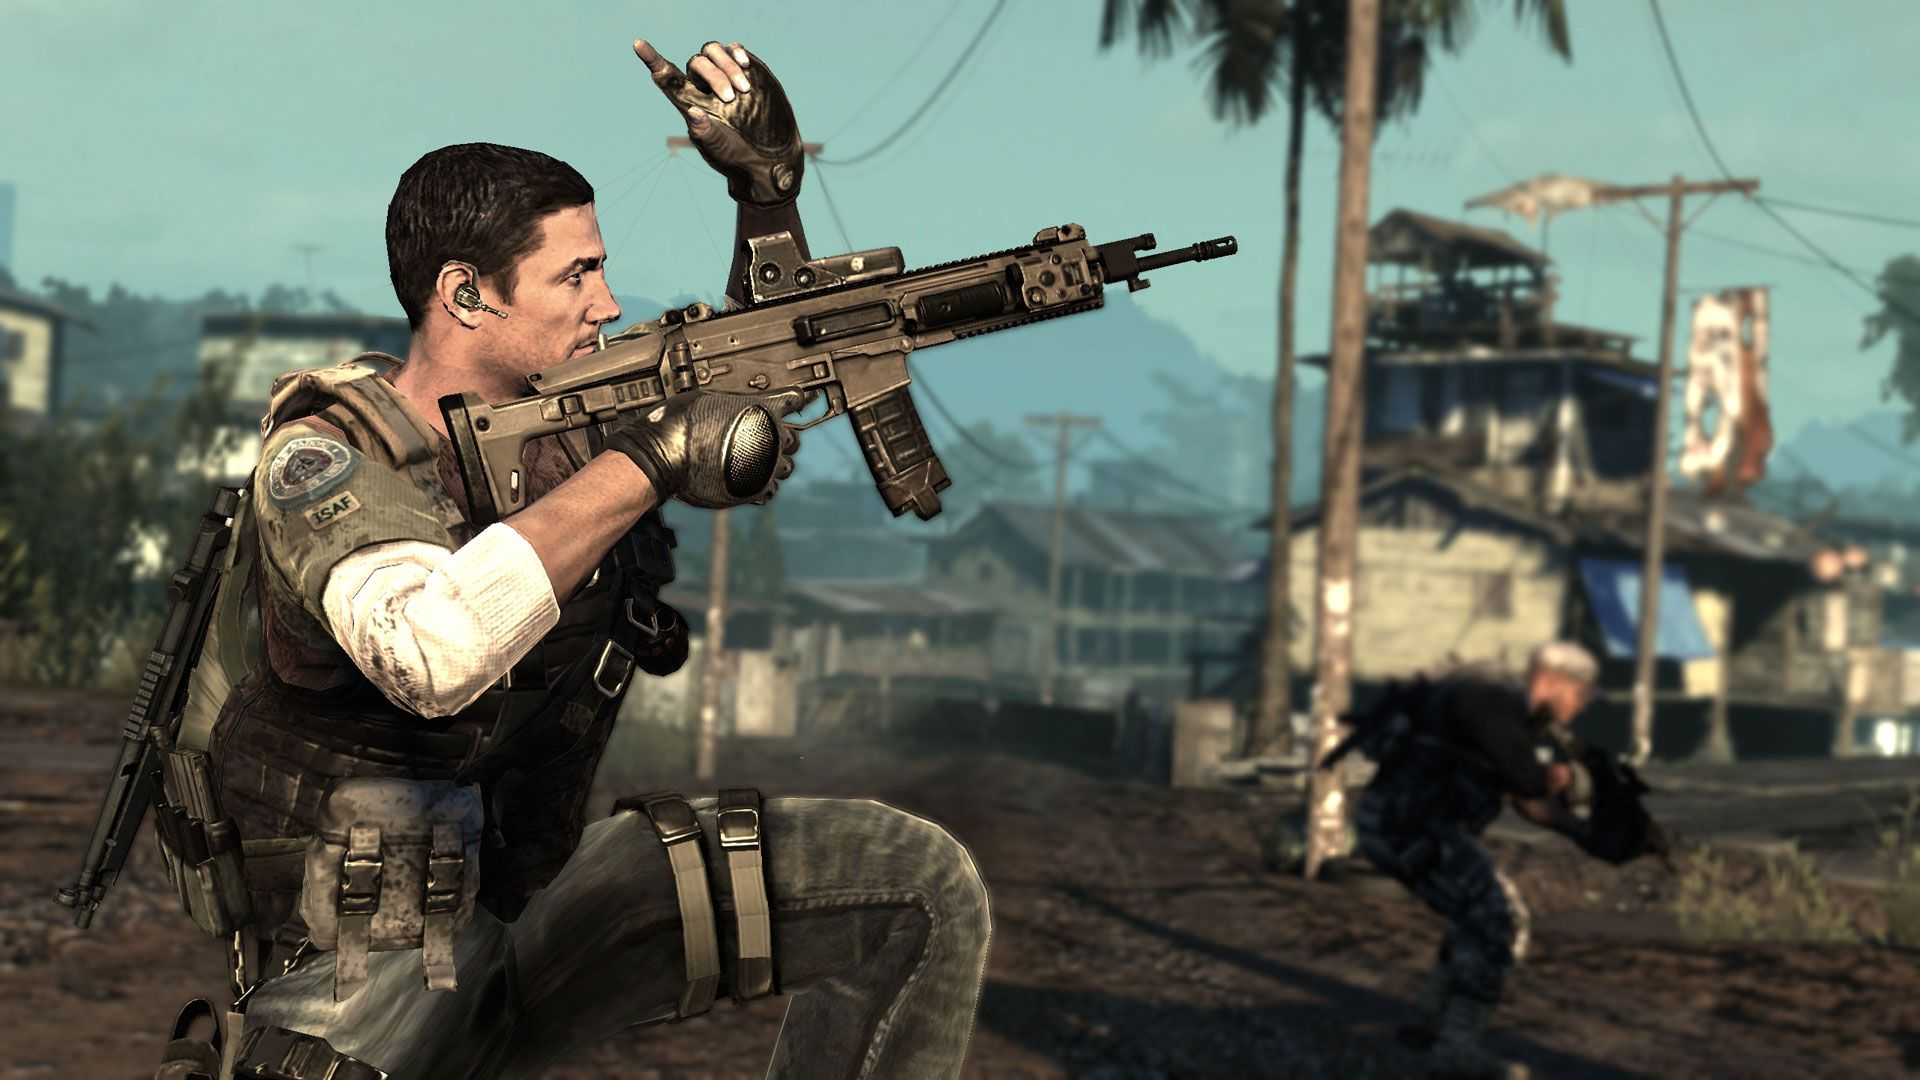 1920x1080 Socom 4 Game Background #14530 Wallpaper   Game Wallpapers HD